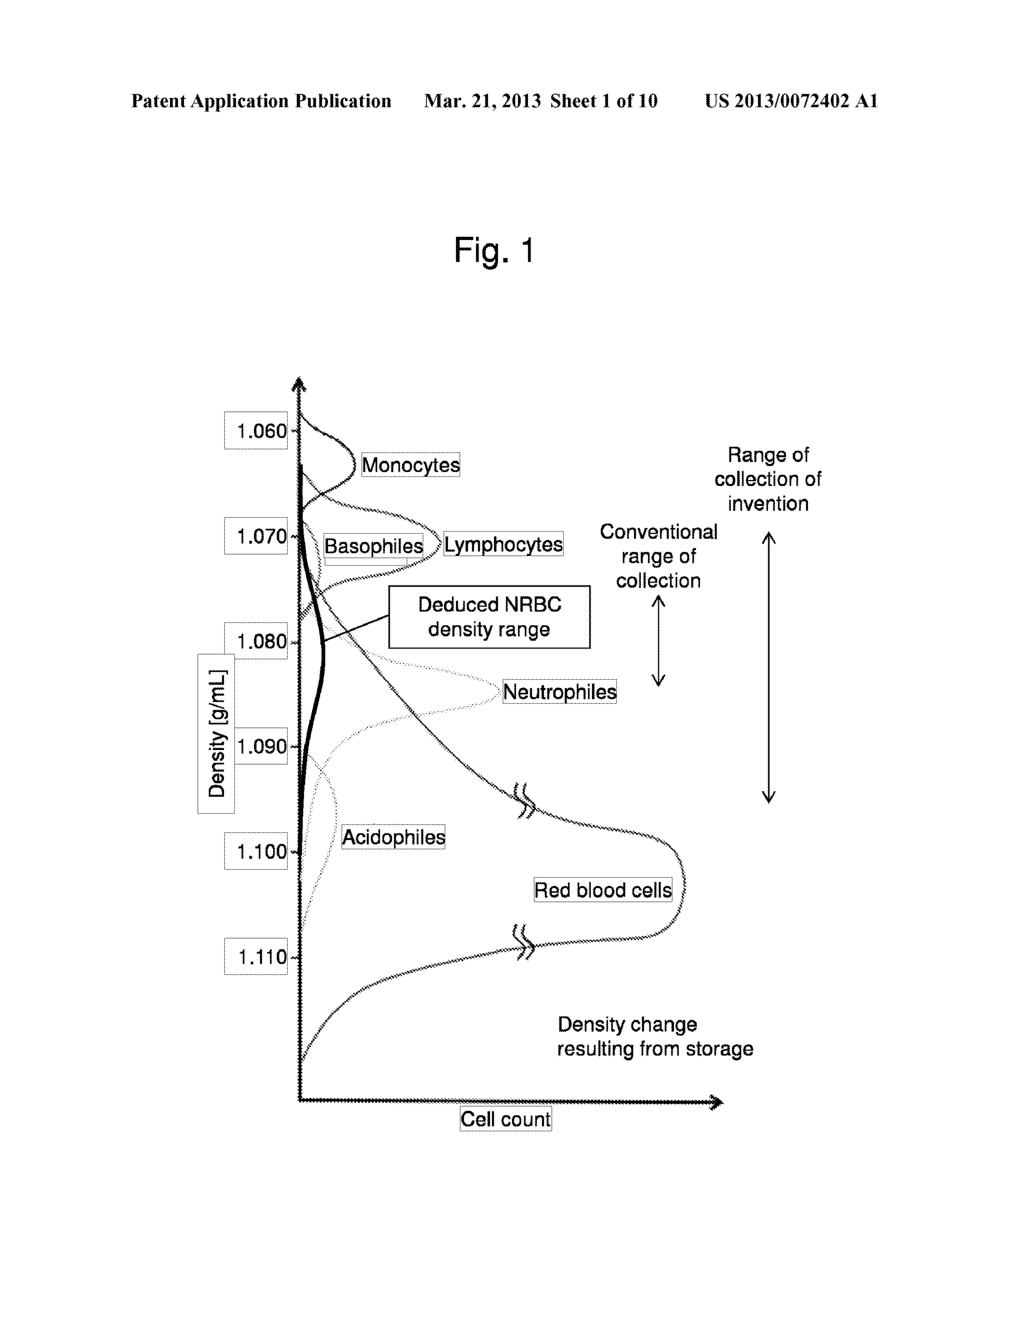 hight resolution of method for collecting nucleated red blood cells via density gradient centrifugation utilizing changes in blood cell density diagram schematic and image